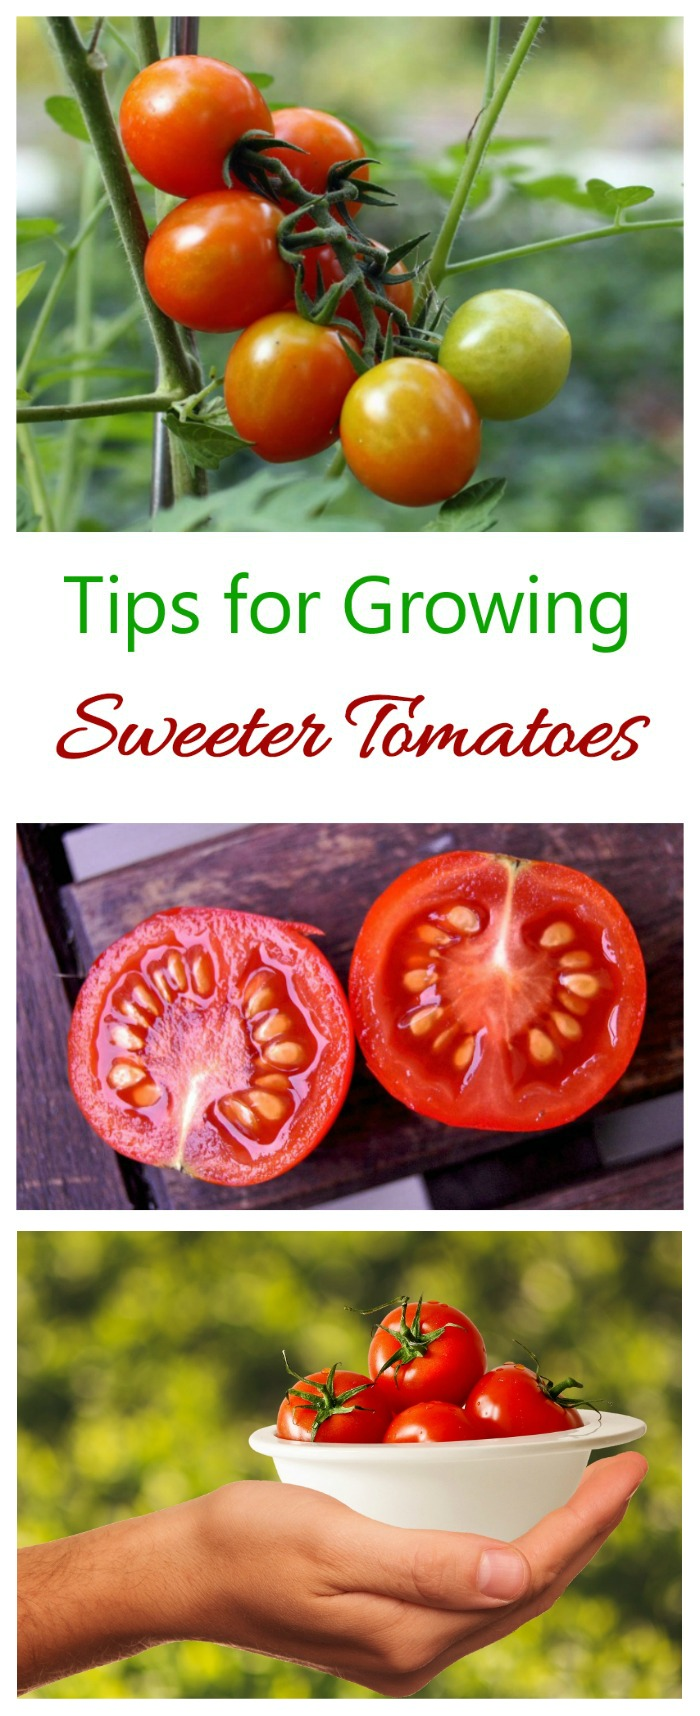 Sweet Tomatoes - Tips, Tricks & Myths - The Gardening Cook